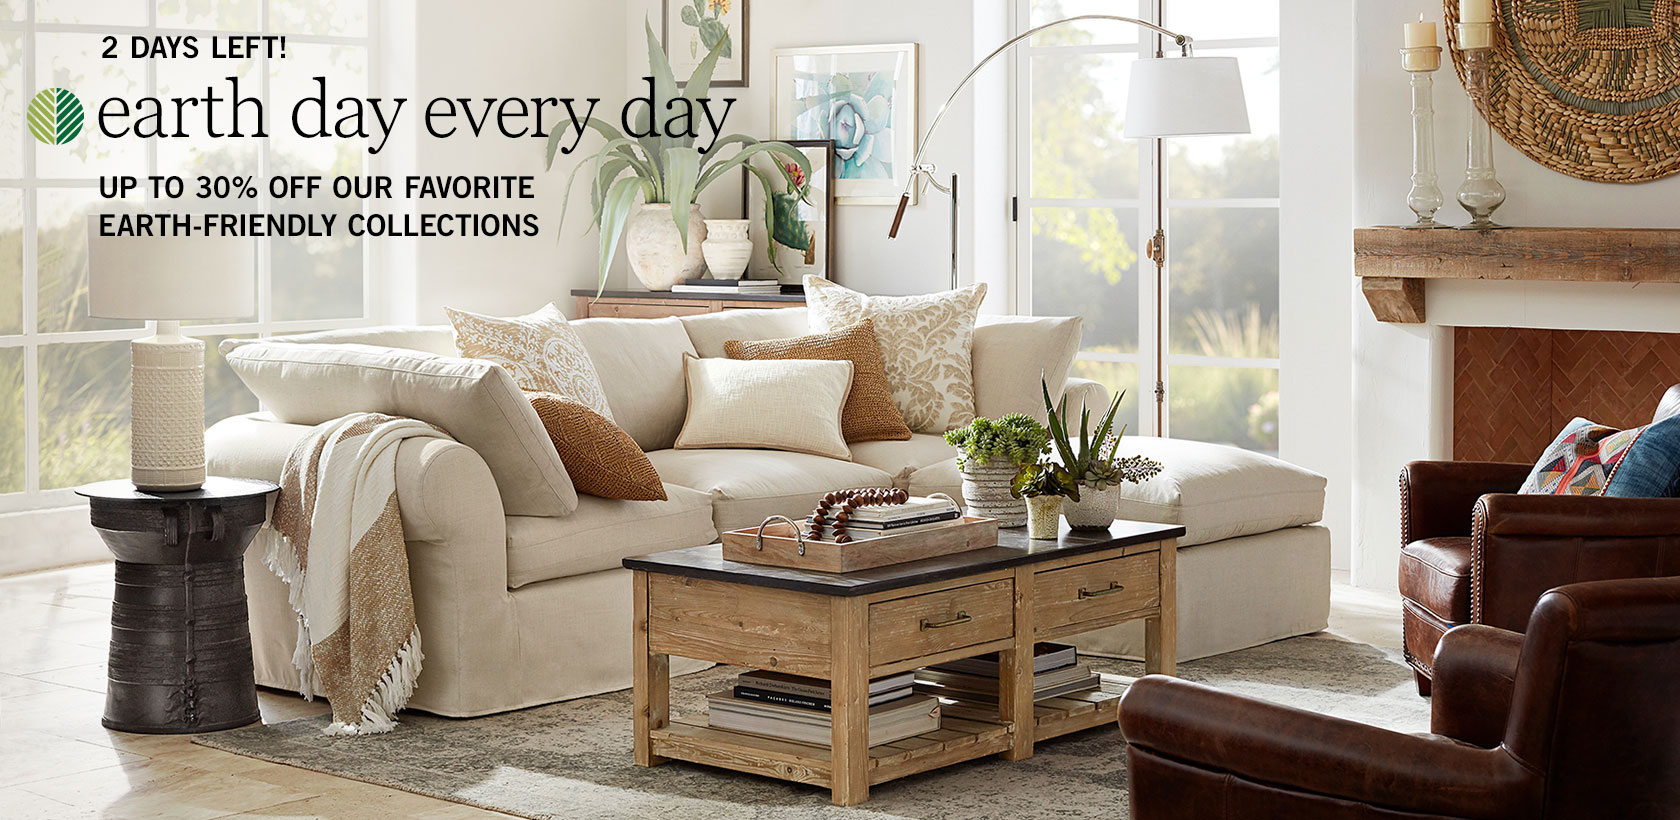 Earth-Friendly Collections Sale